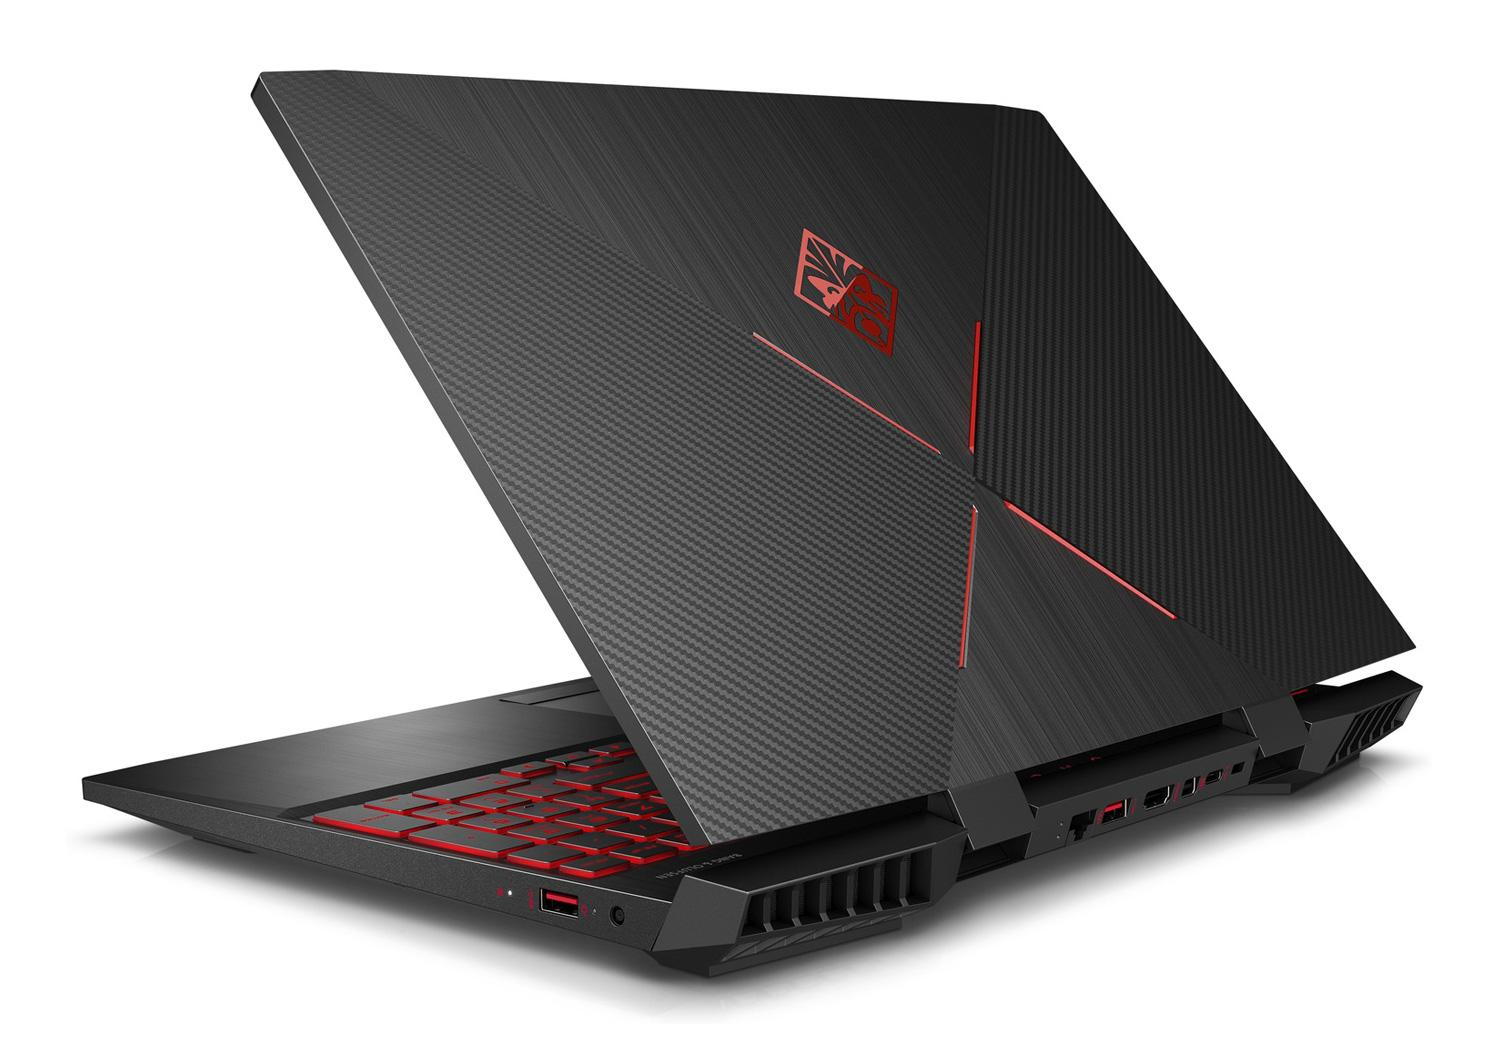 Ordinateur portable HP Omen 15-dc0014nf - IPS 144 Hz G-Sync, GTX 1060 - photo 4